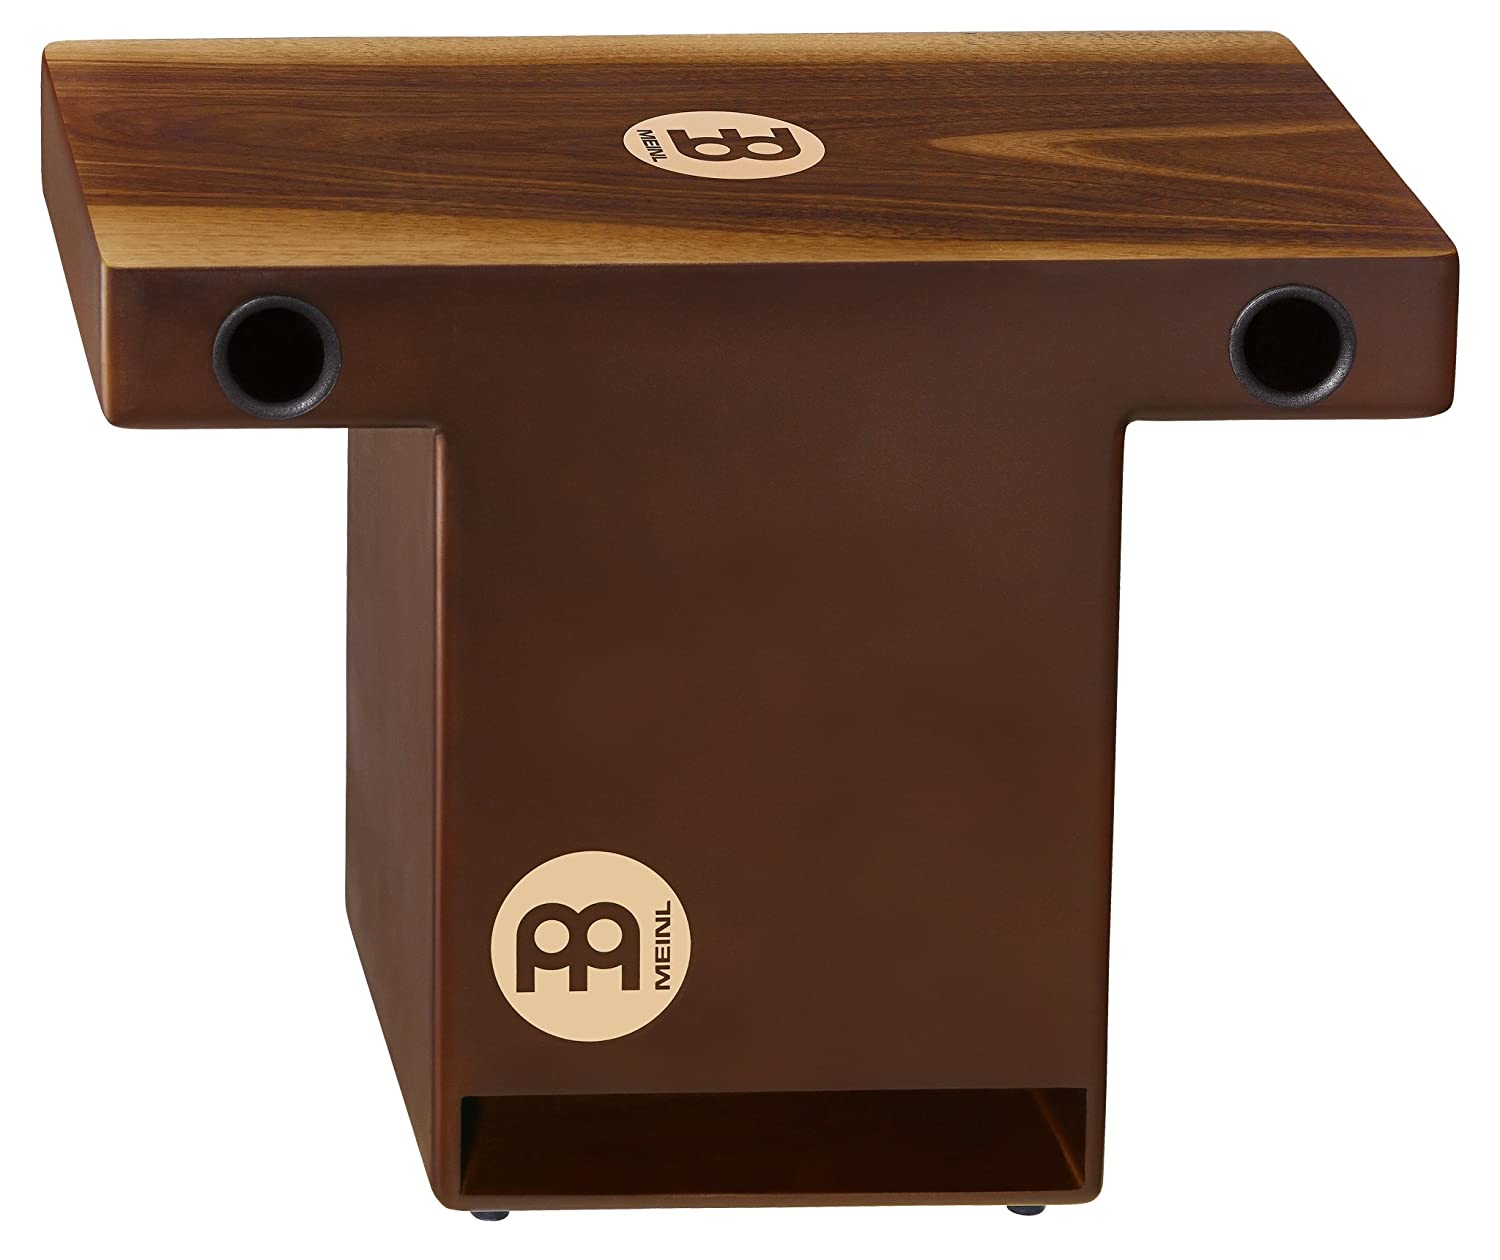 Meinl Slaptop Cajon Box Drum with Internal Snares - NOT MADE IN CHINA - Makah Burl Playing Surface, 2-YEAR WARRANTY (TOPCAJ1MB) Meinl USA L.C.